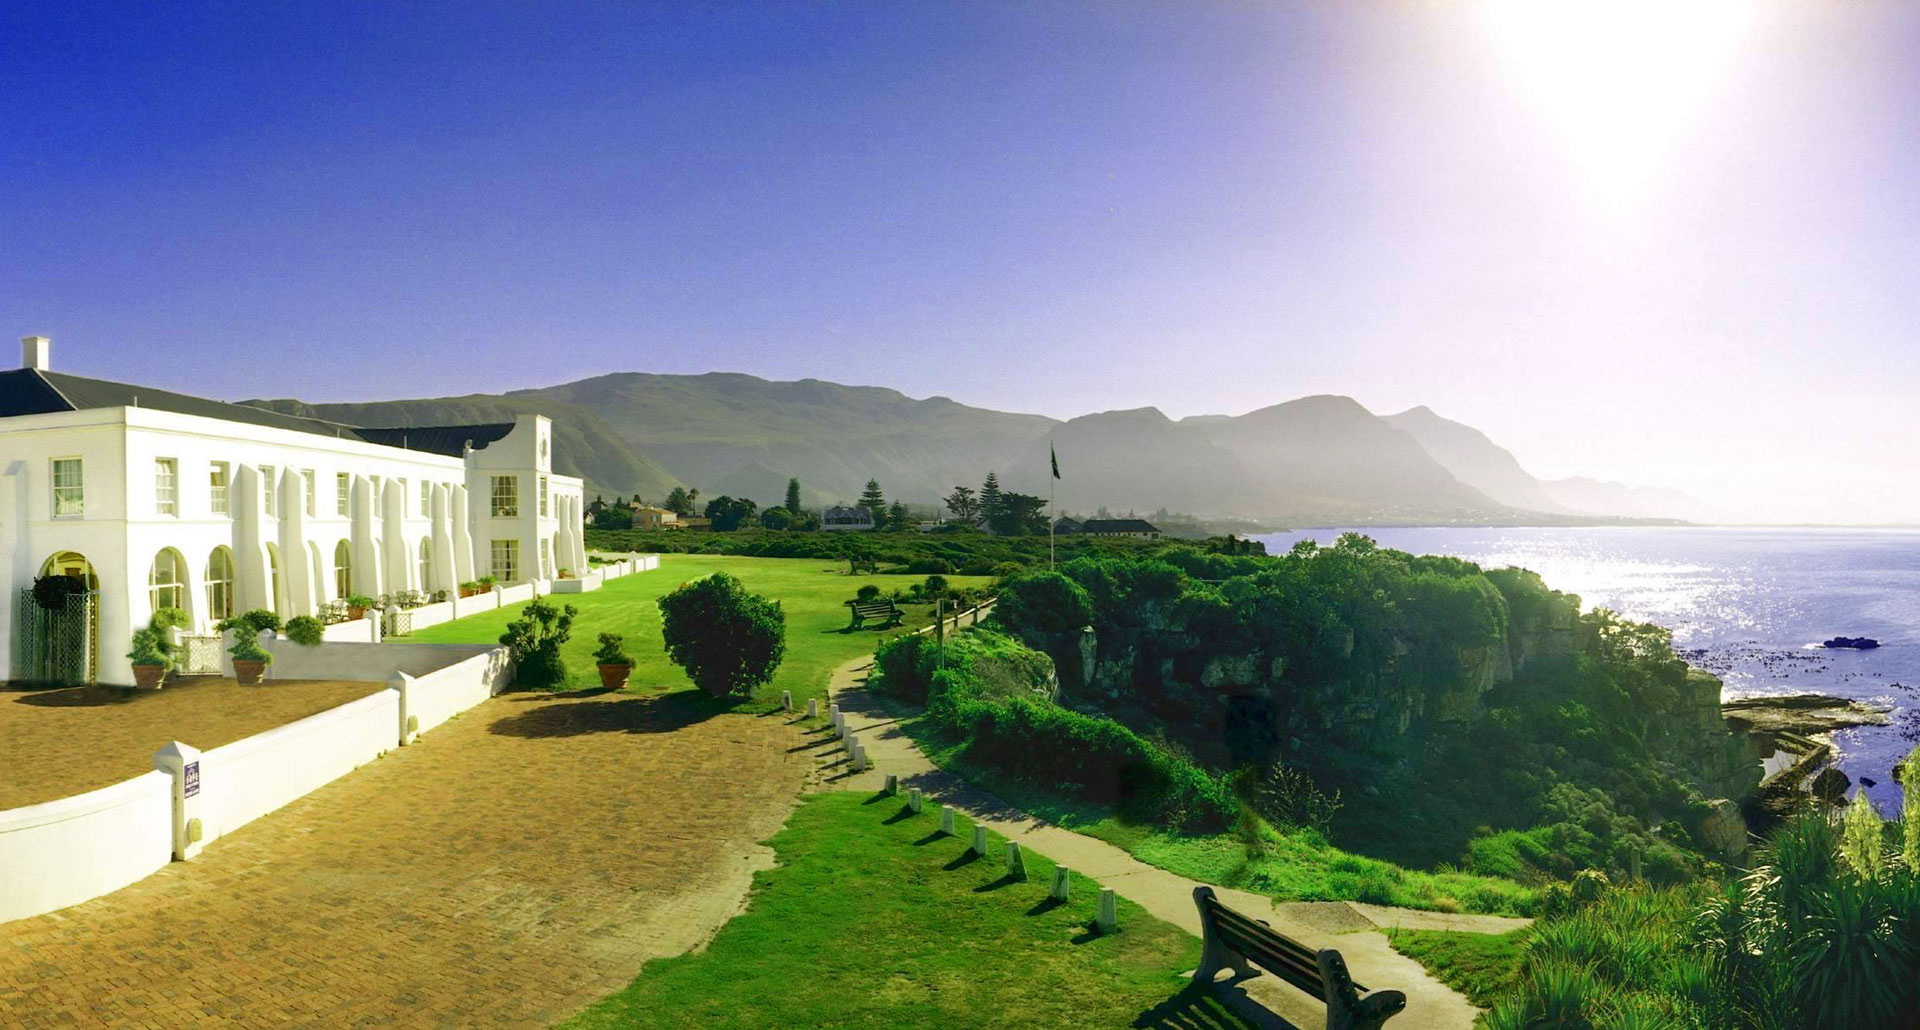 Marine Hermanus - boutique hotel in Hermanus